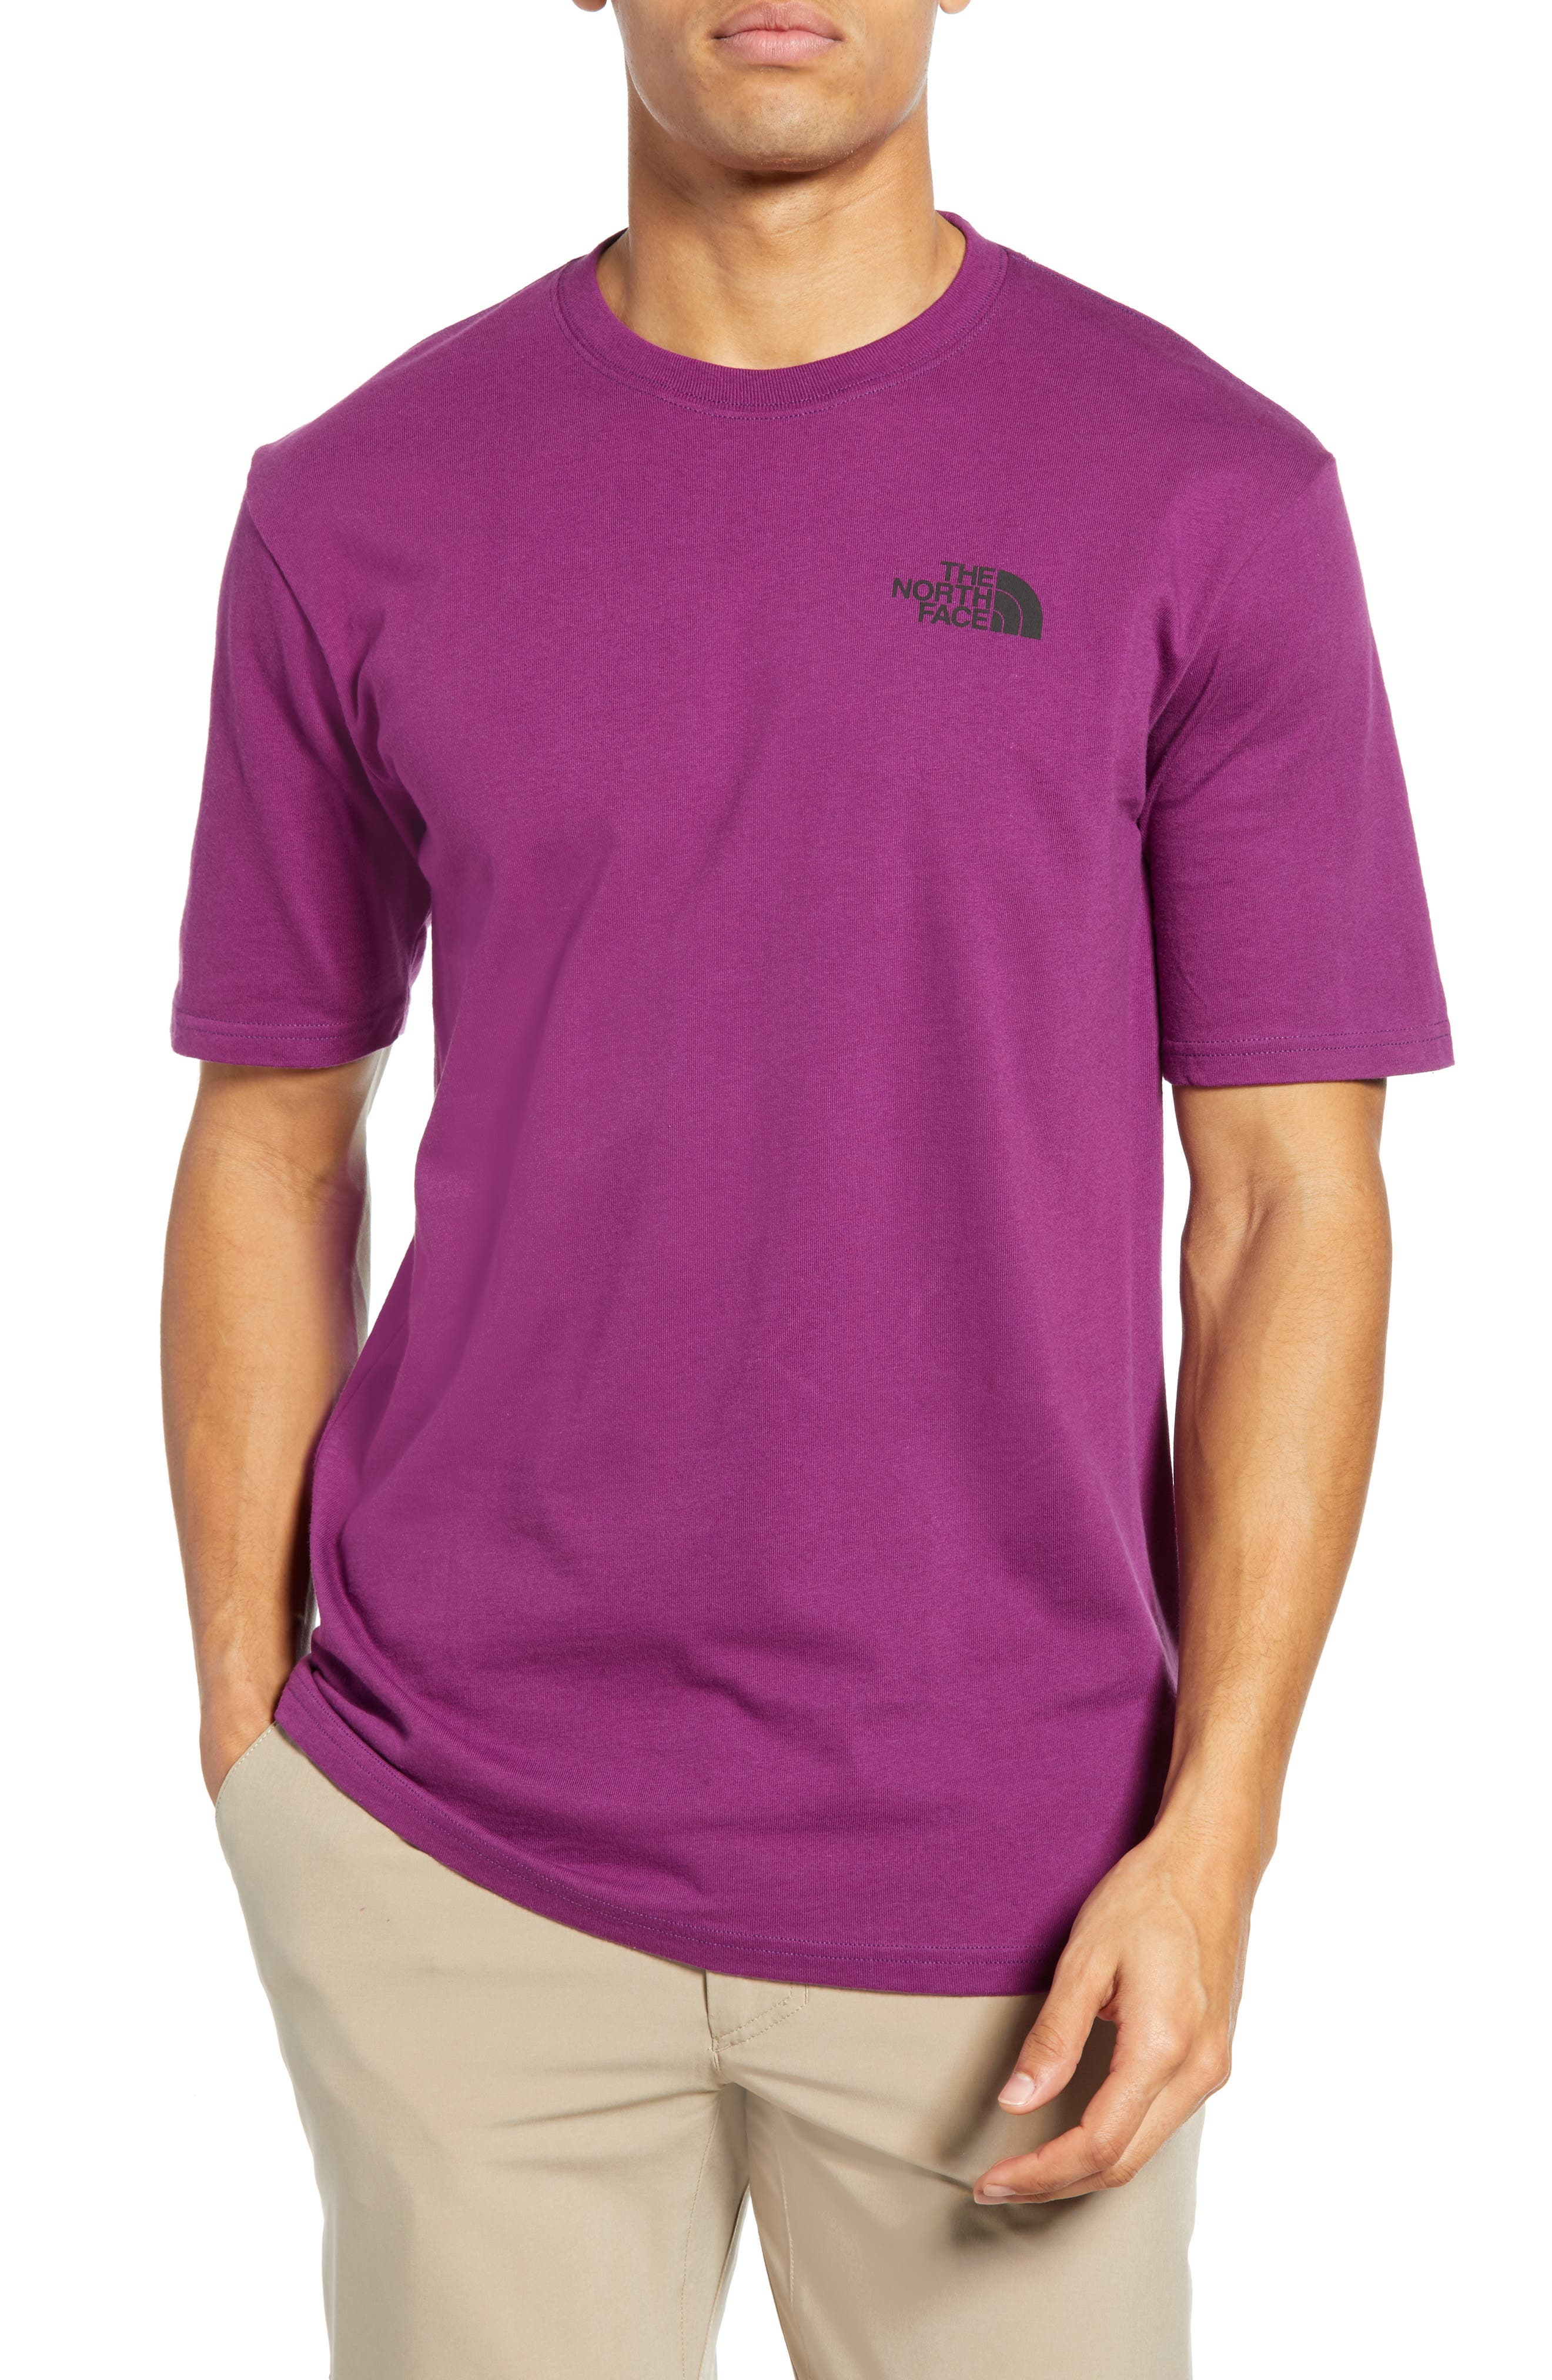 6a000c11b04926 Men s The North Face T-Shirts